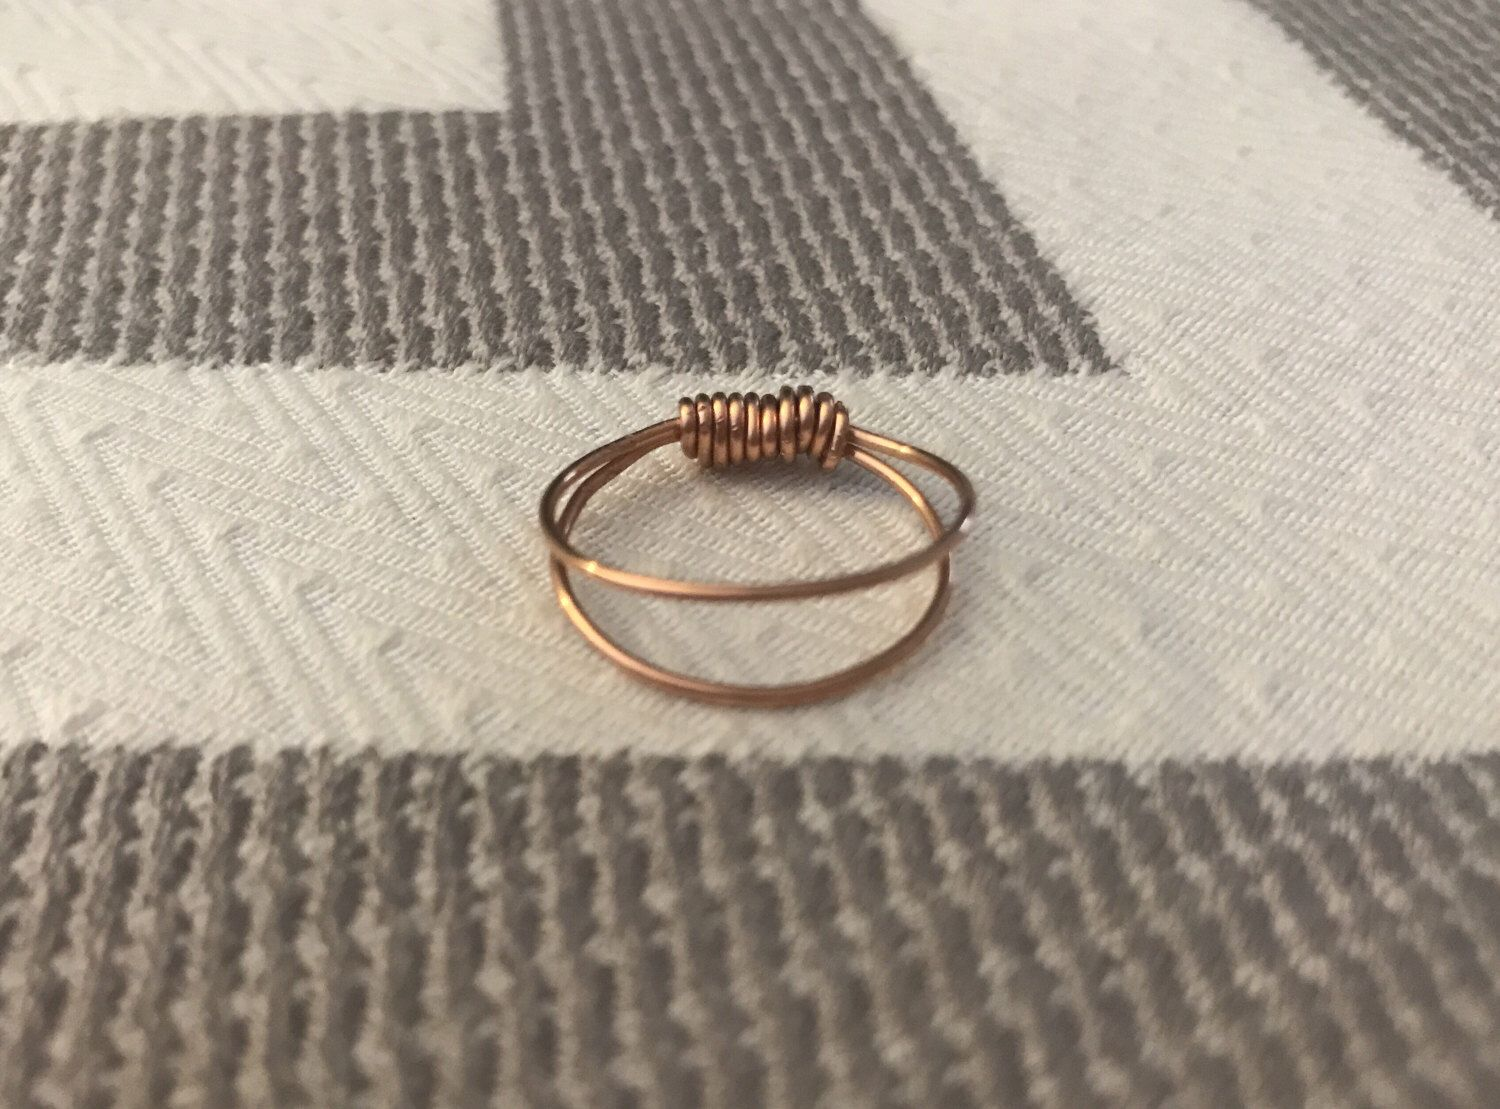 Set of Two Copper Midi Rings by Gingerproducts on Etsy https://www.etsy.com/listing/508063905/set-of-two-copper-midi-rings